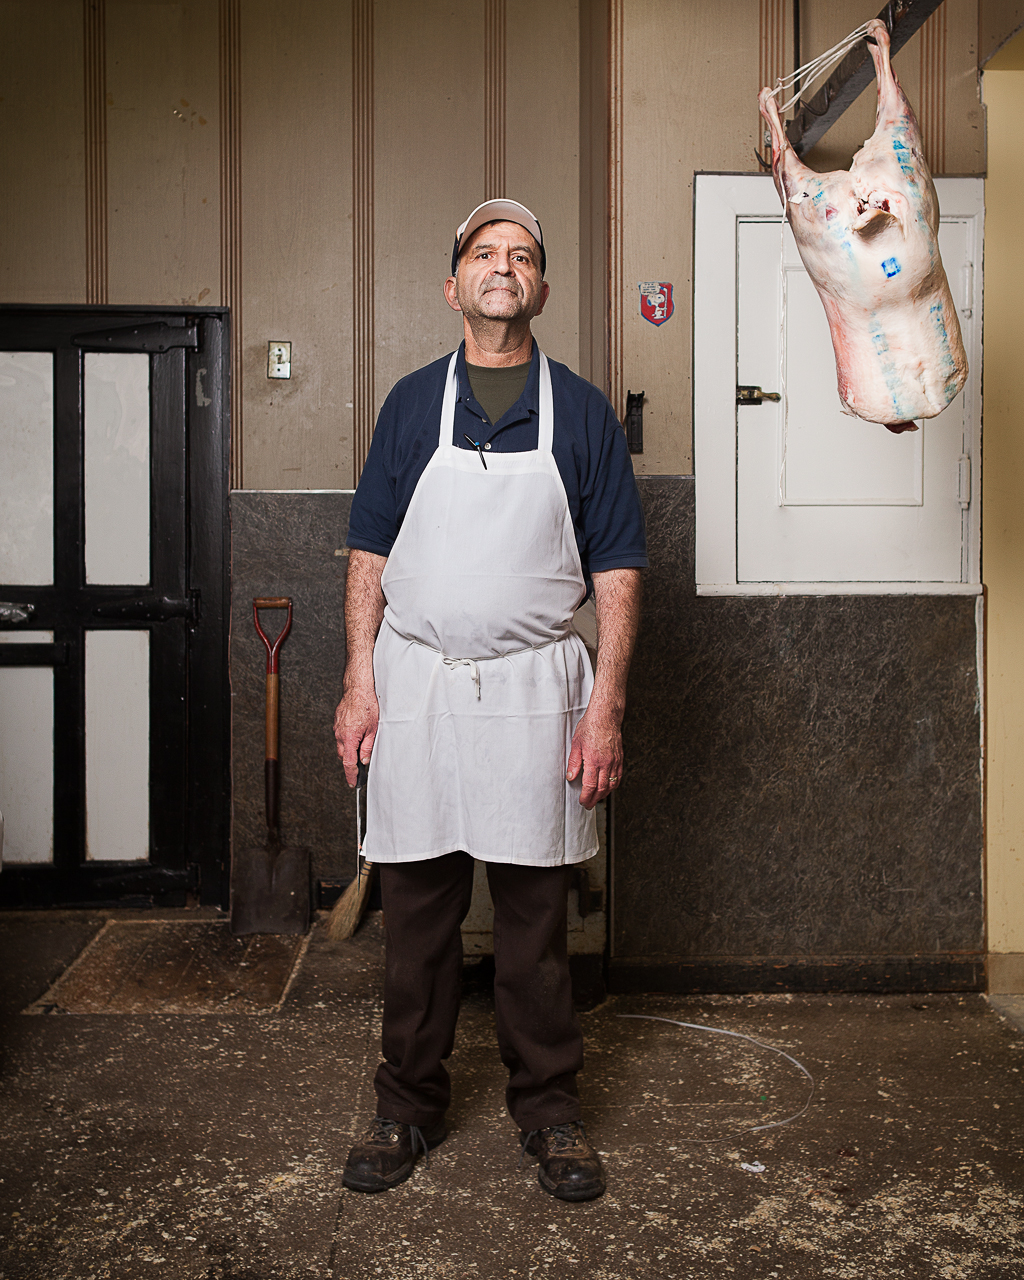 Stevie, butcher at Truglio's Meat Market